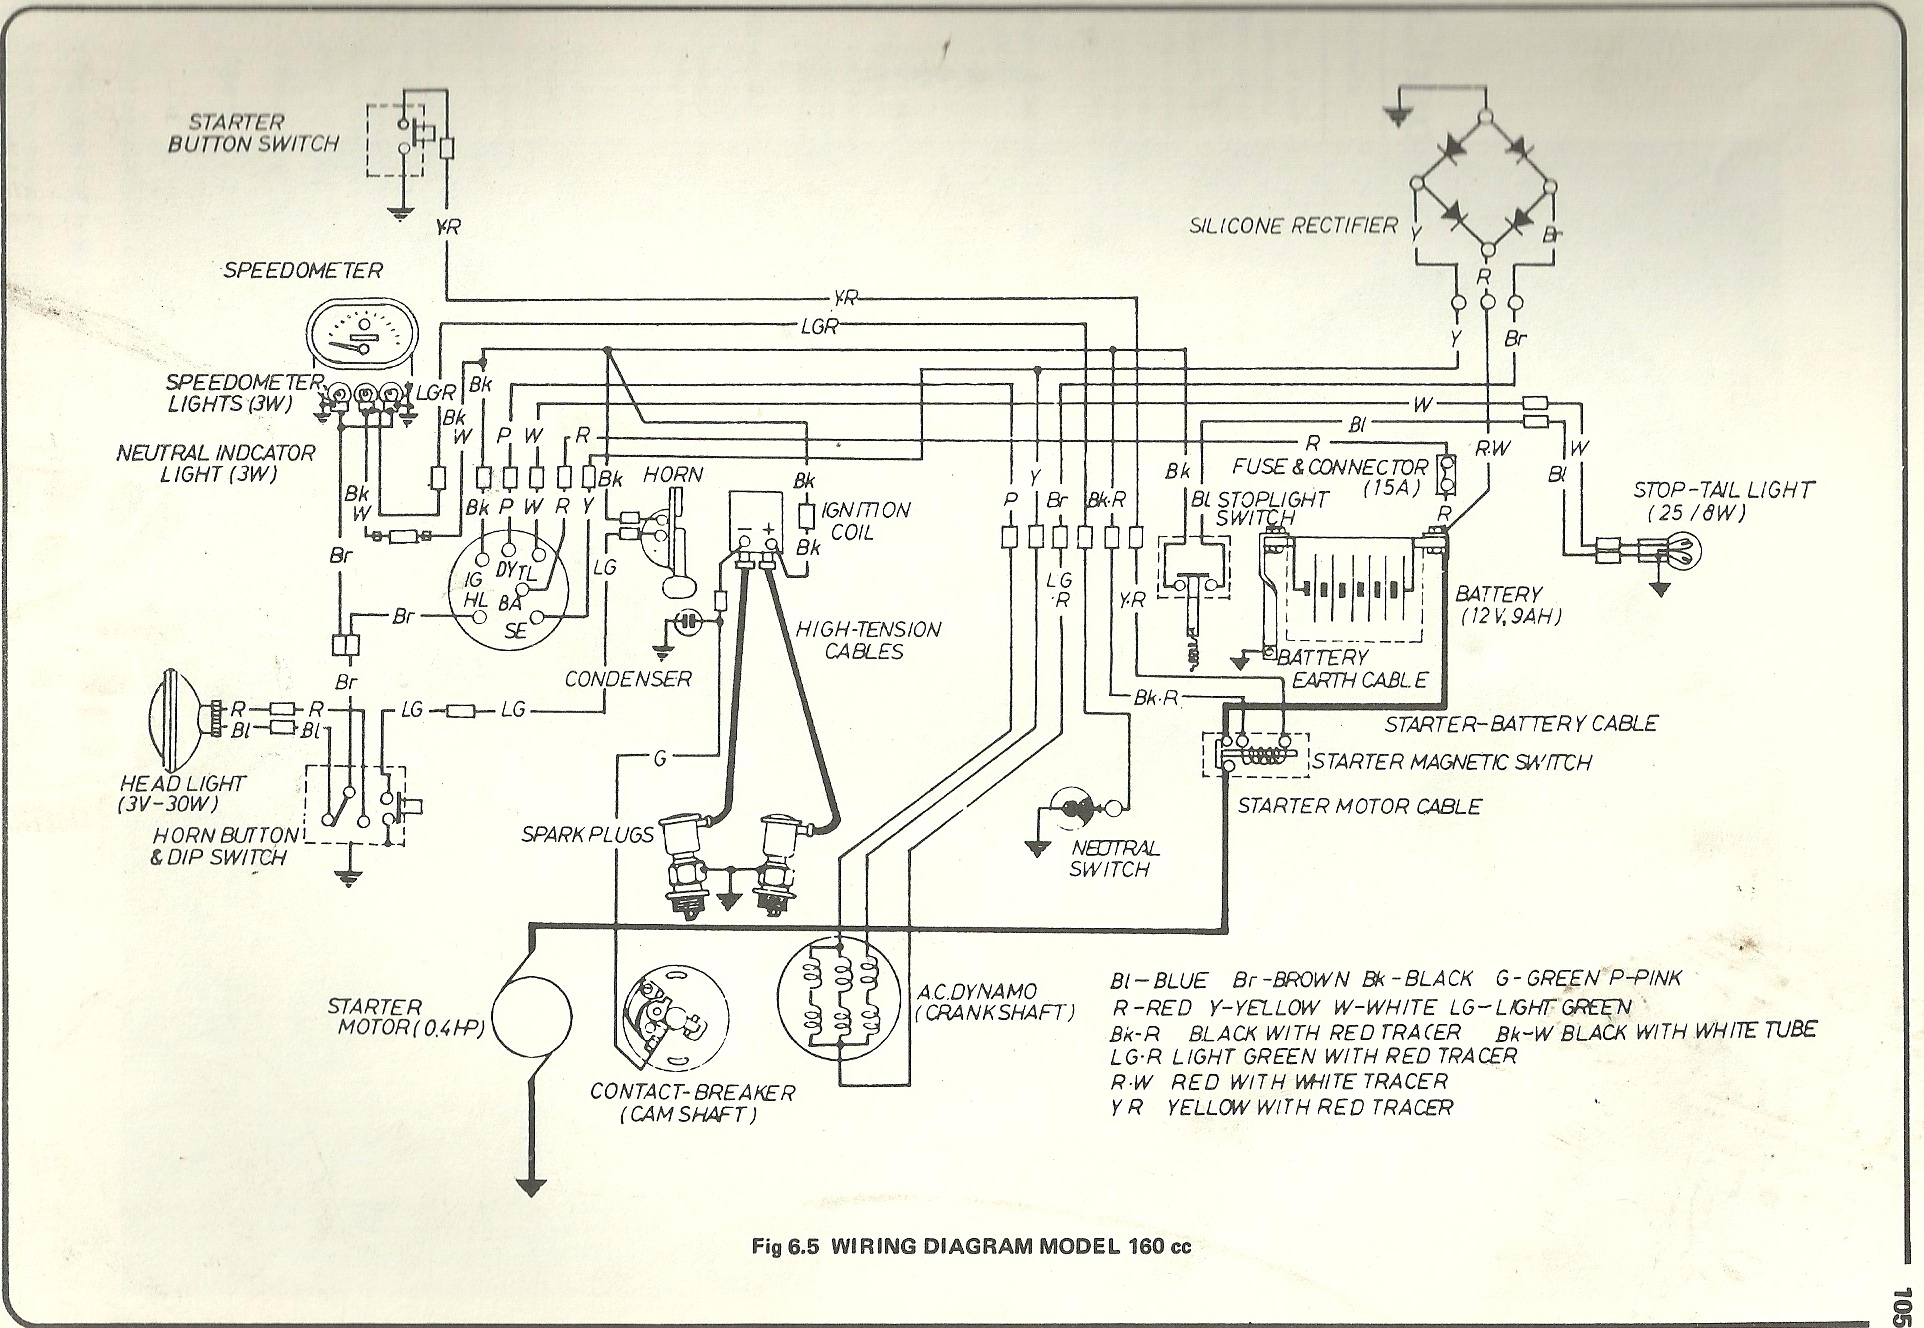 CB1602 wiring diagrams honda cb160 wiring diagram at gsmportal.co